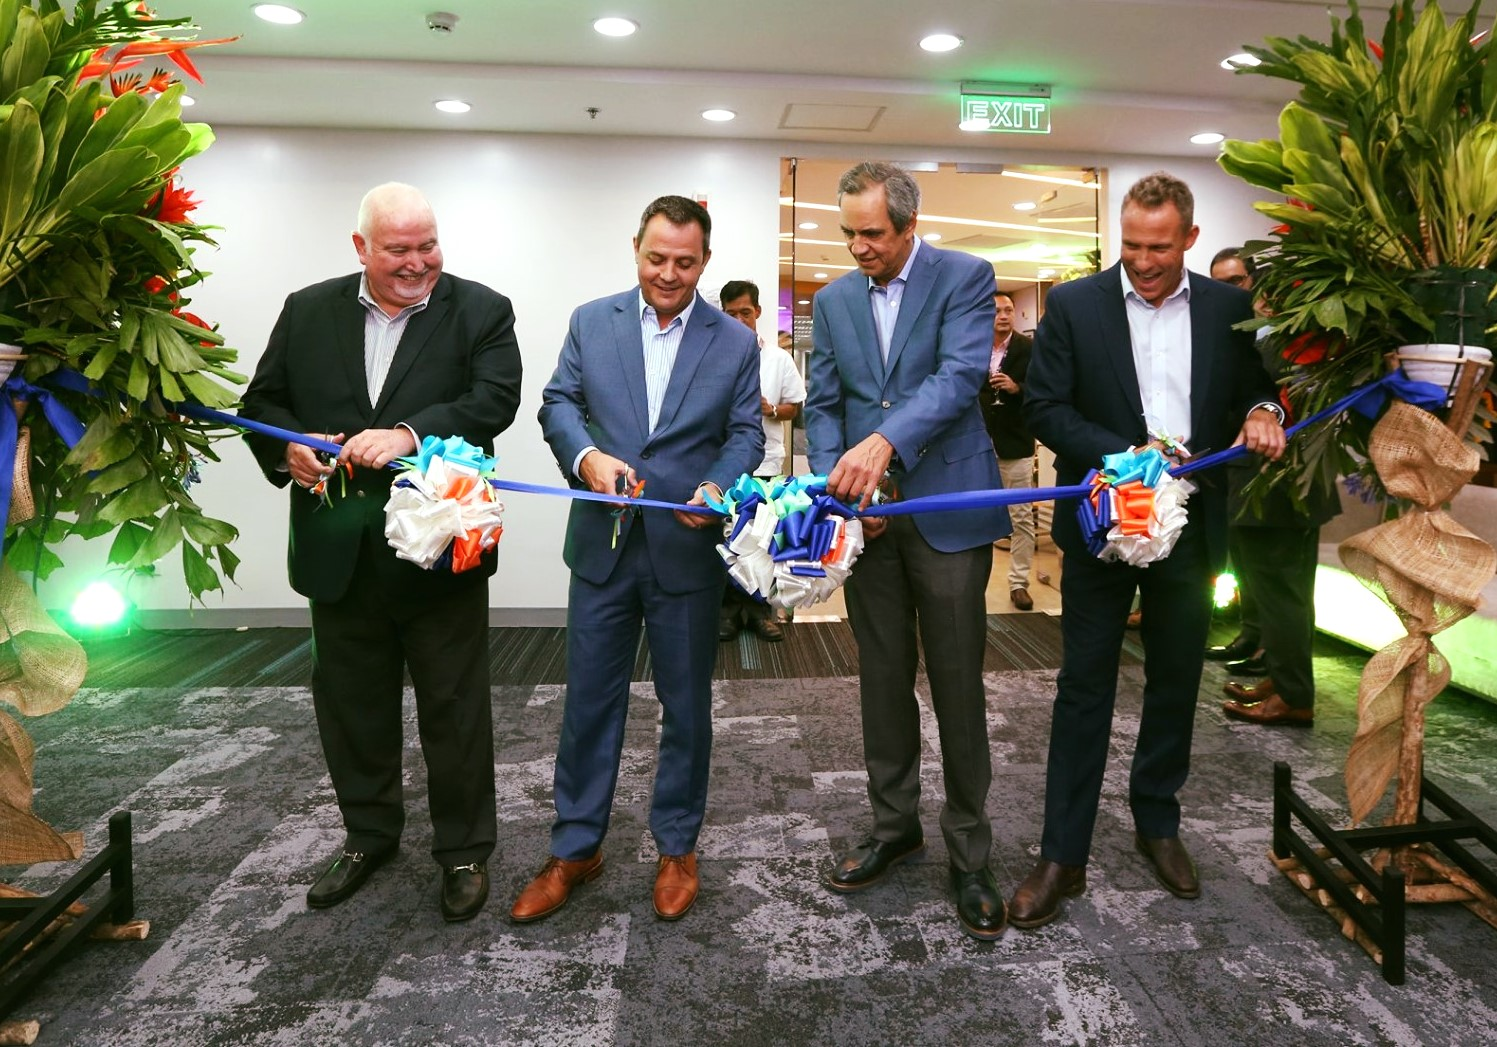 PrimeBMD launches its new office in Pasay City